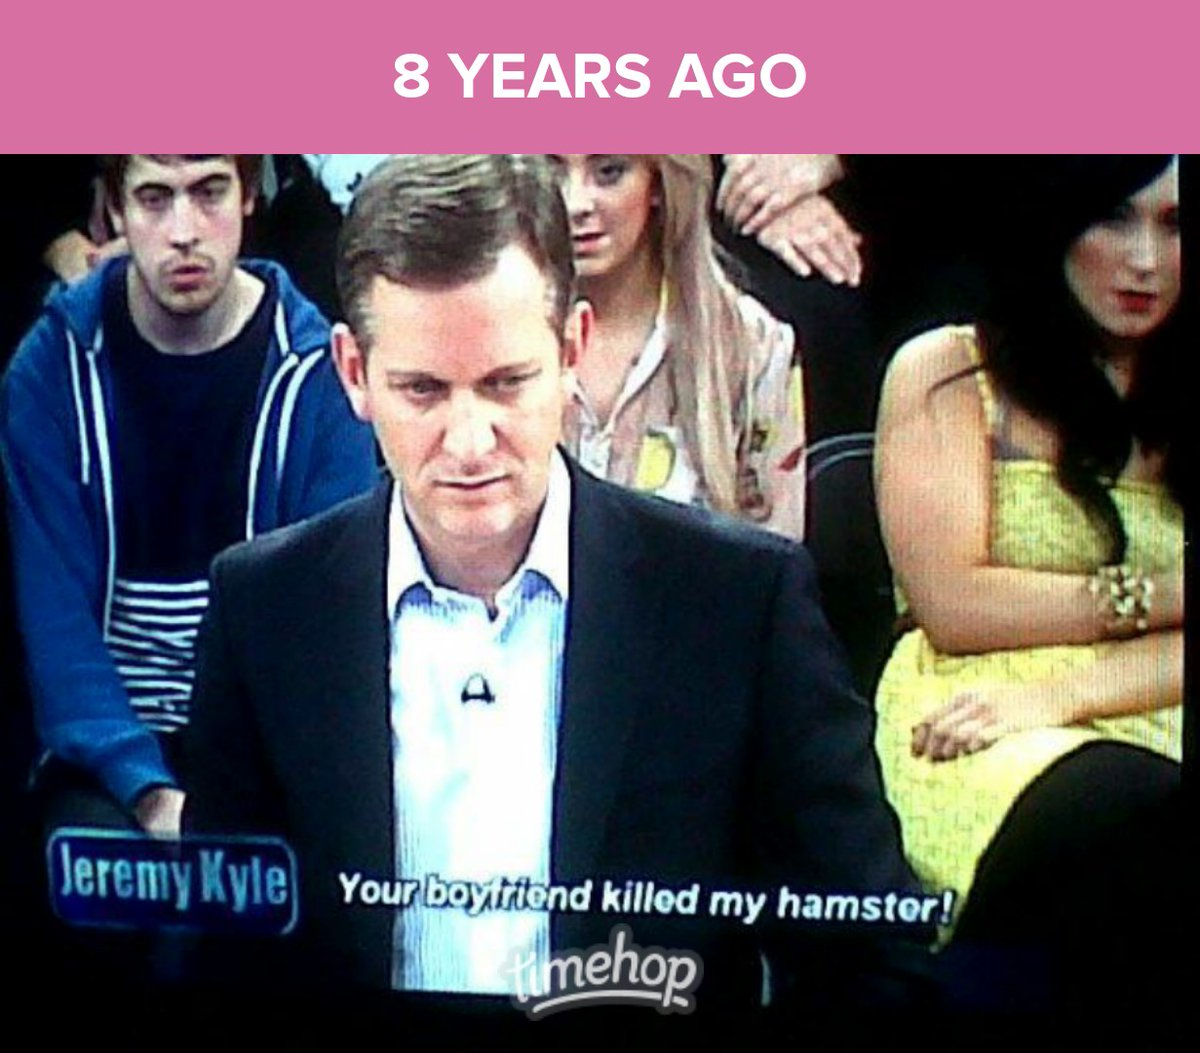 Oh guys....look at this for memories #jeremykyle #925club